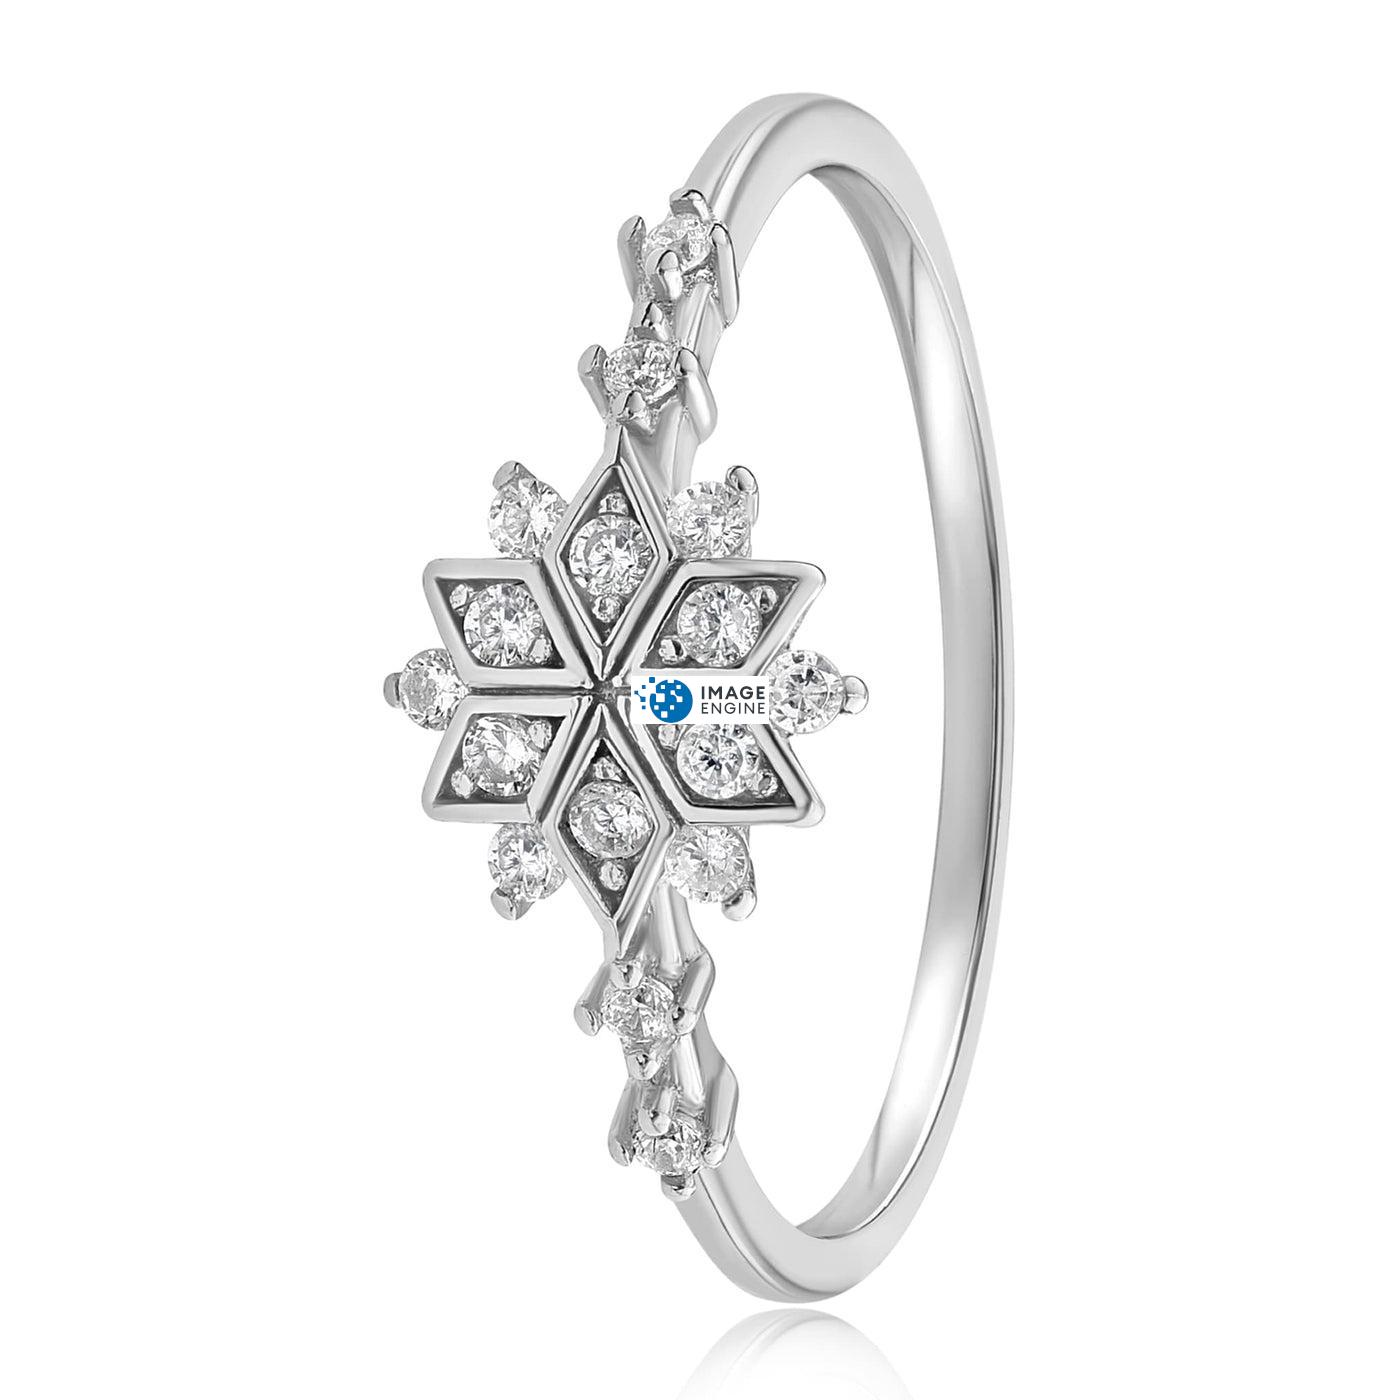 Sophia Snowflake Ring - Side View - 925 Sterling Silver